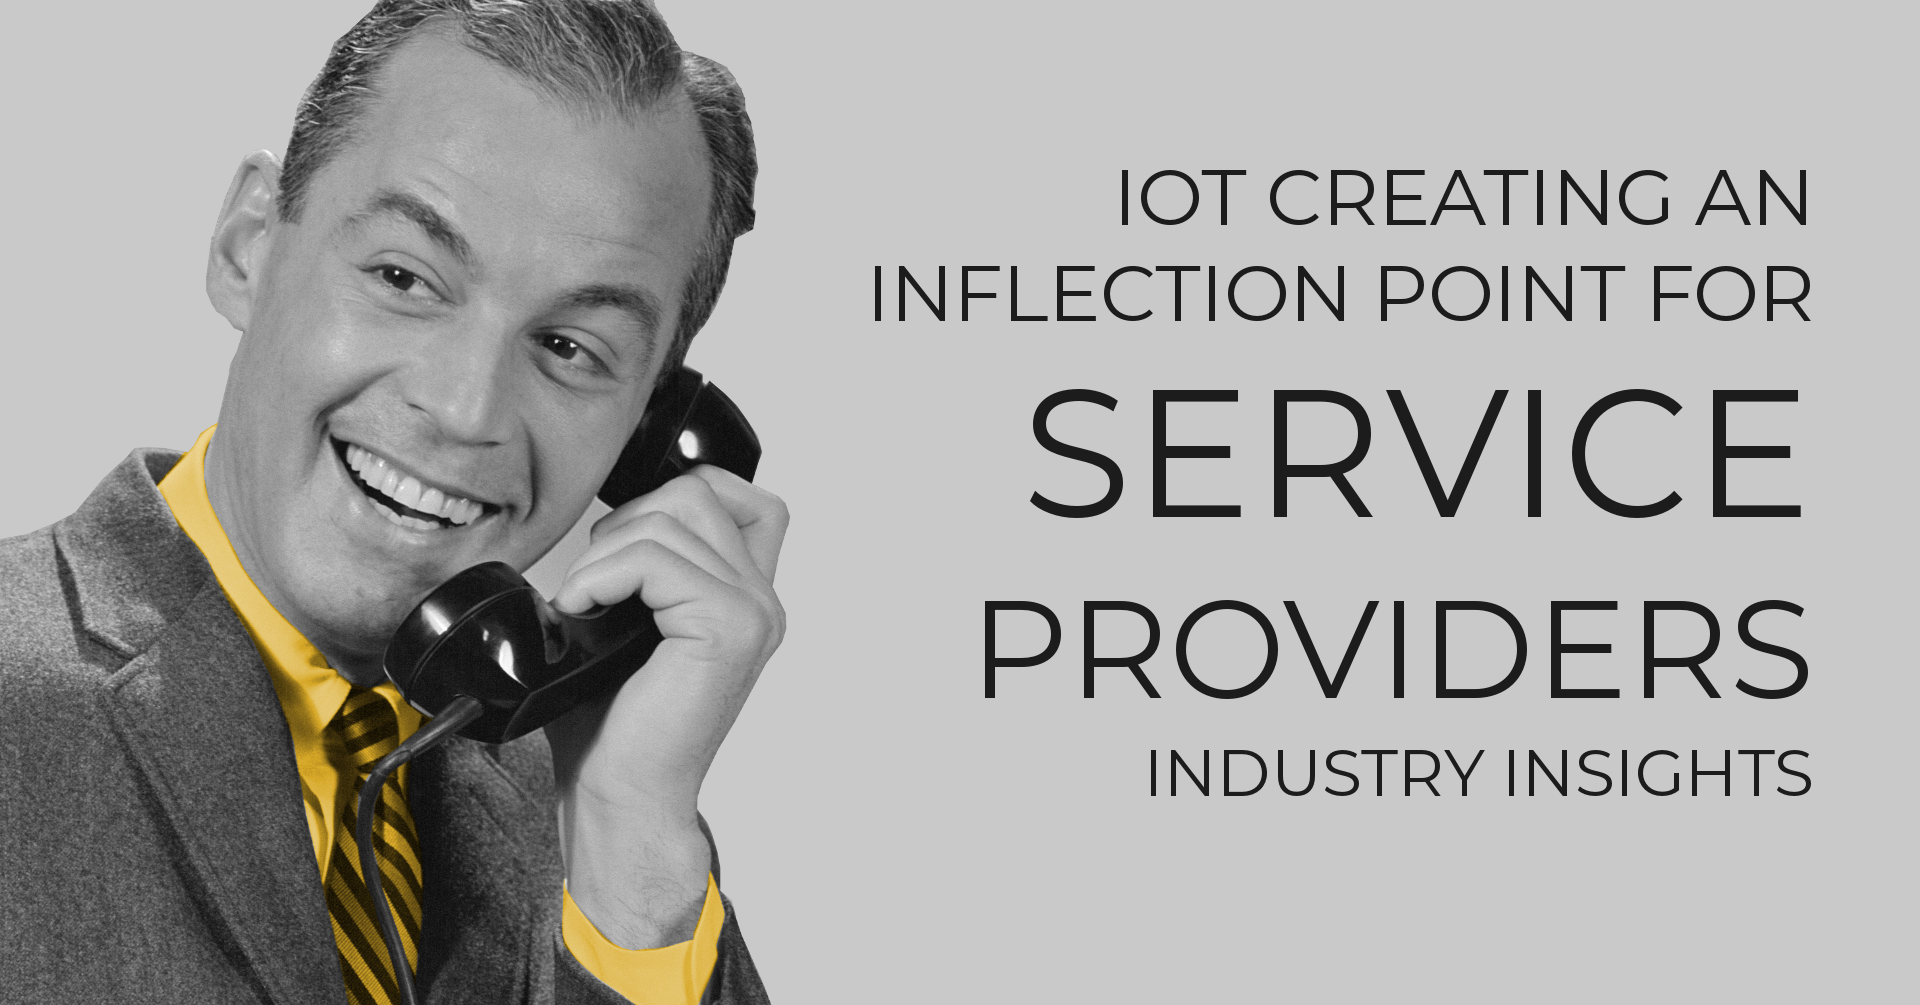 IoT Creating Inflection Point for Service Providers